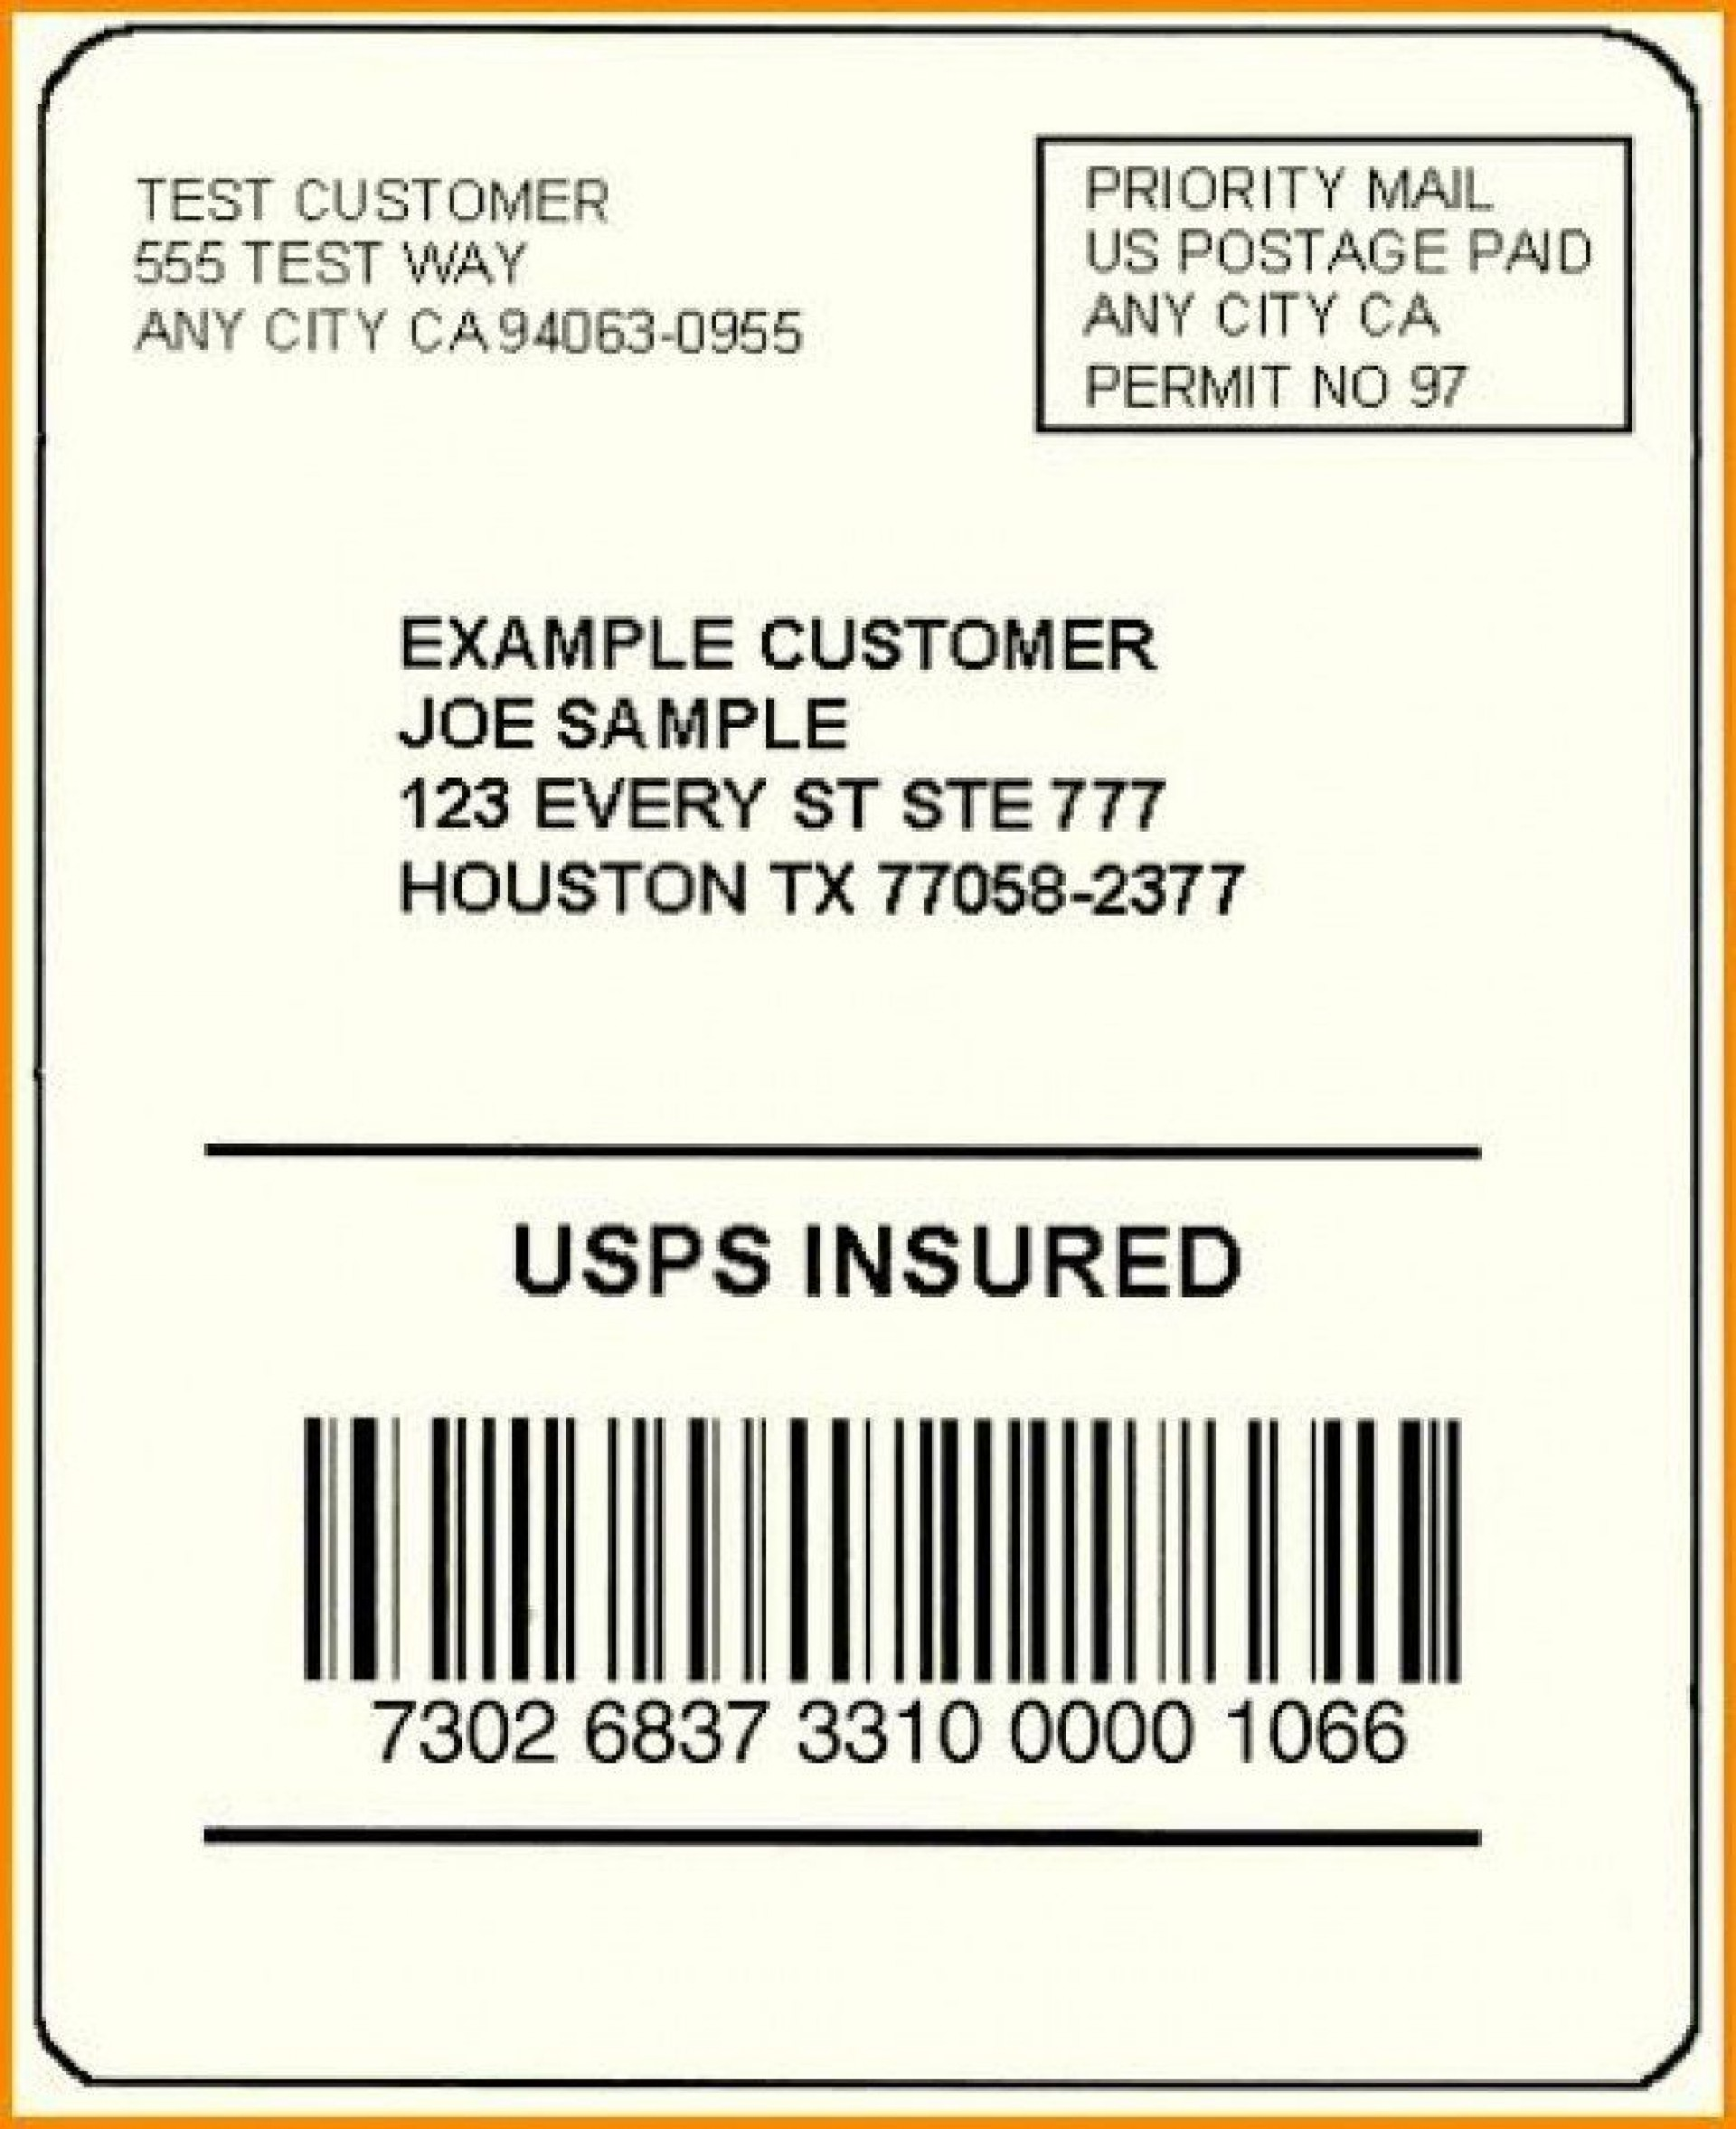 002 Exceptional Free Usp Shipping Label Template Sample 1920